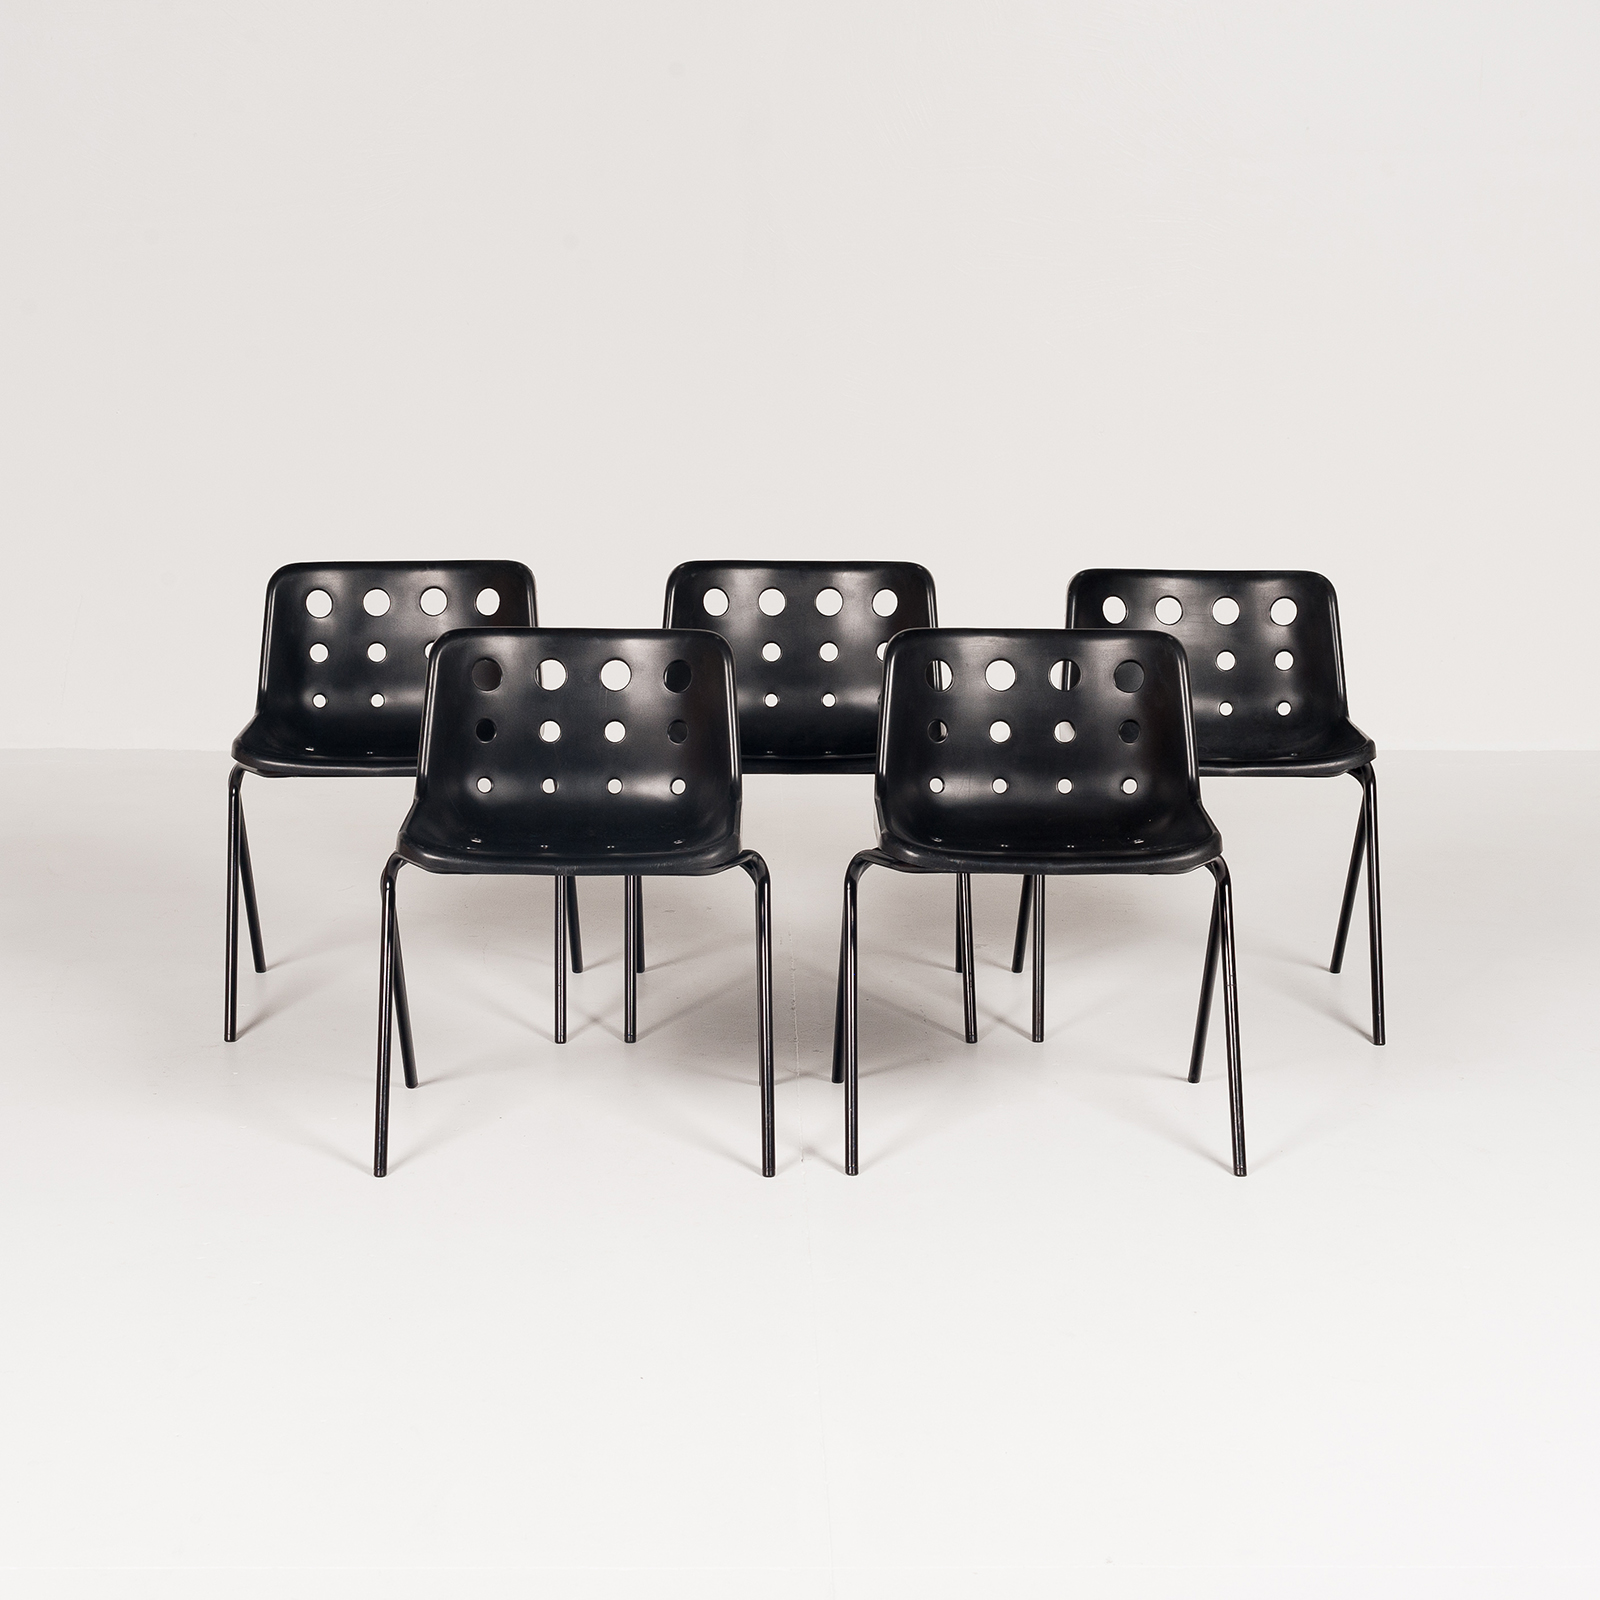 Polo Stacking Chair By Robin Day In Black Polyproylene, 1970s, England5886